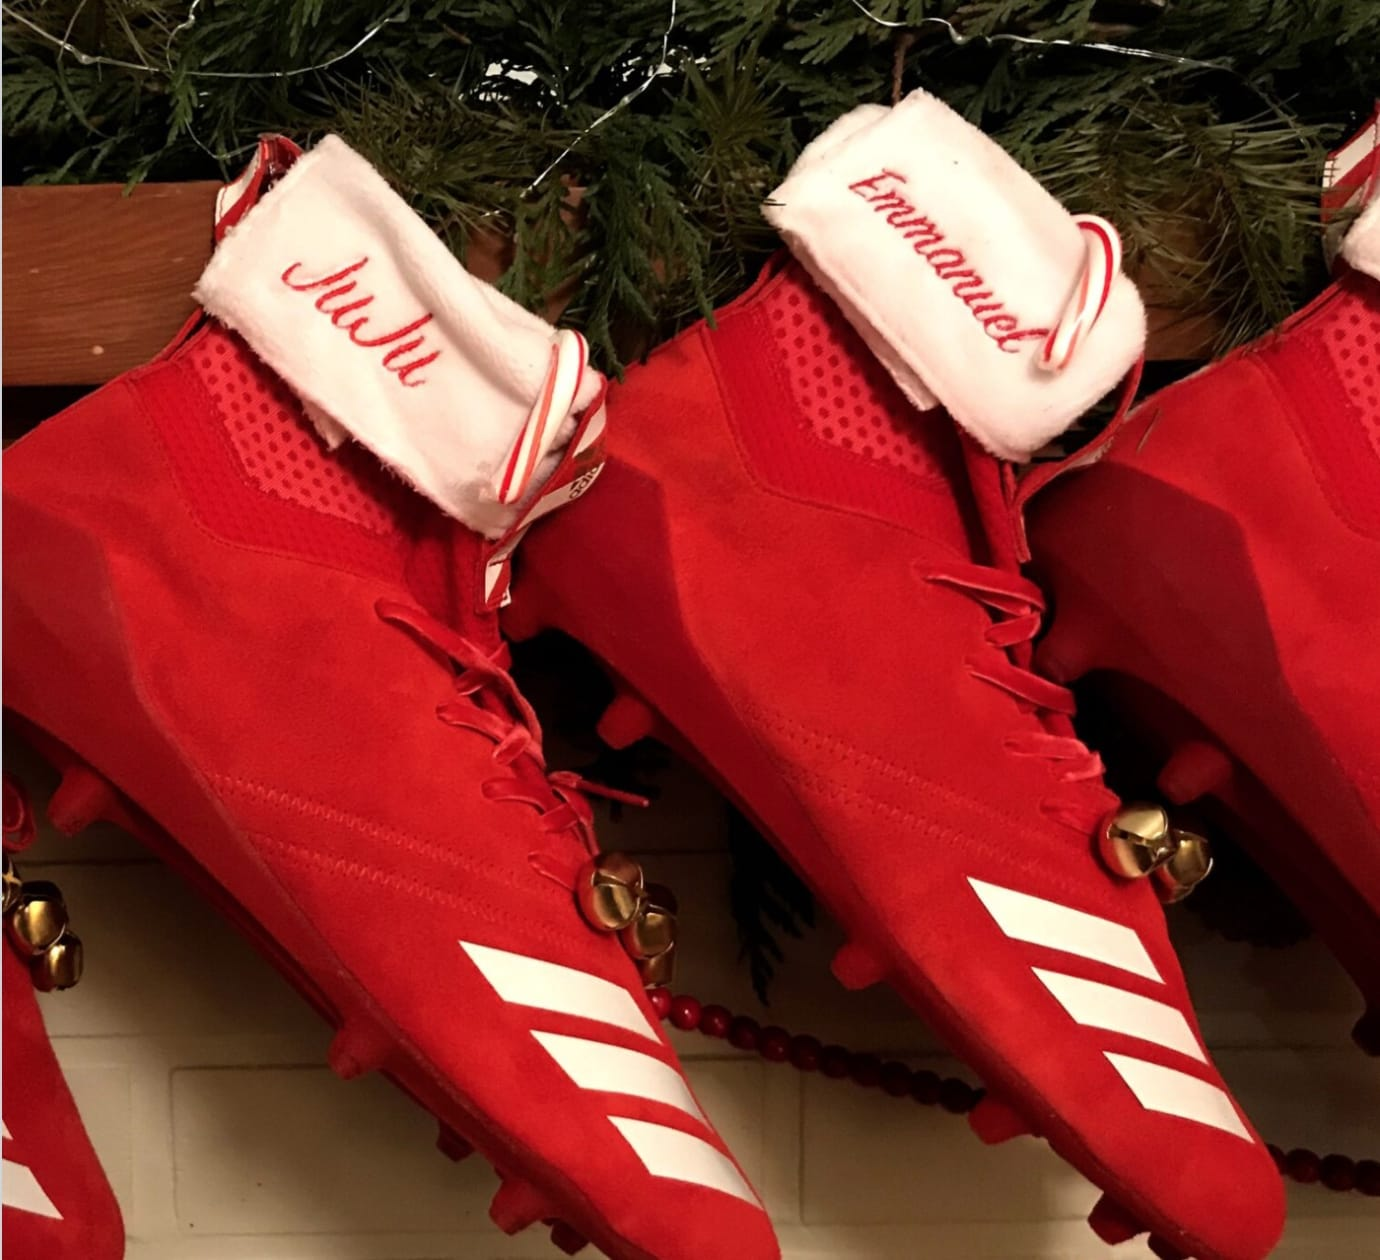 Adidas Football Christmas Stocking Cleats (2)